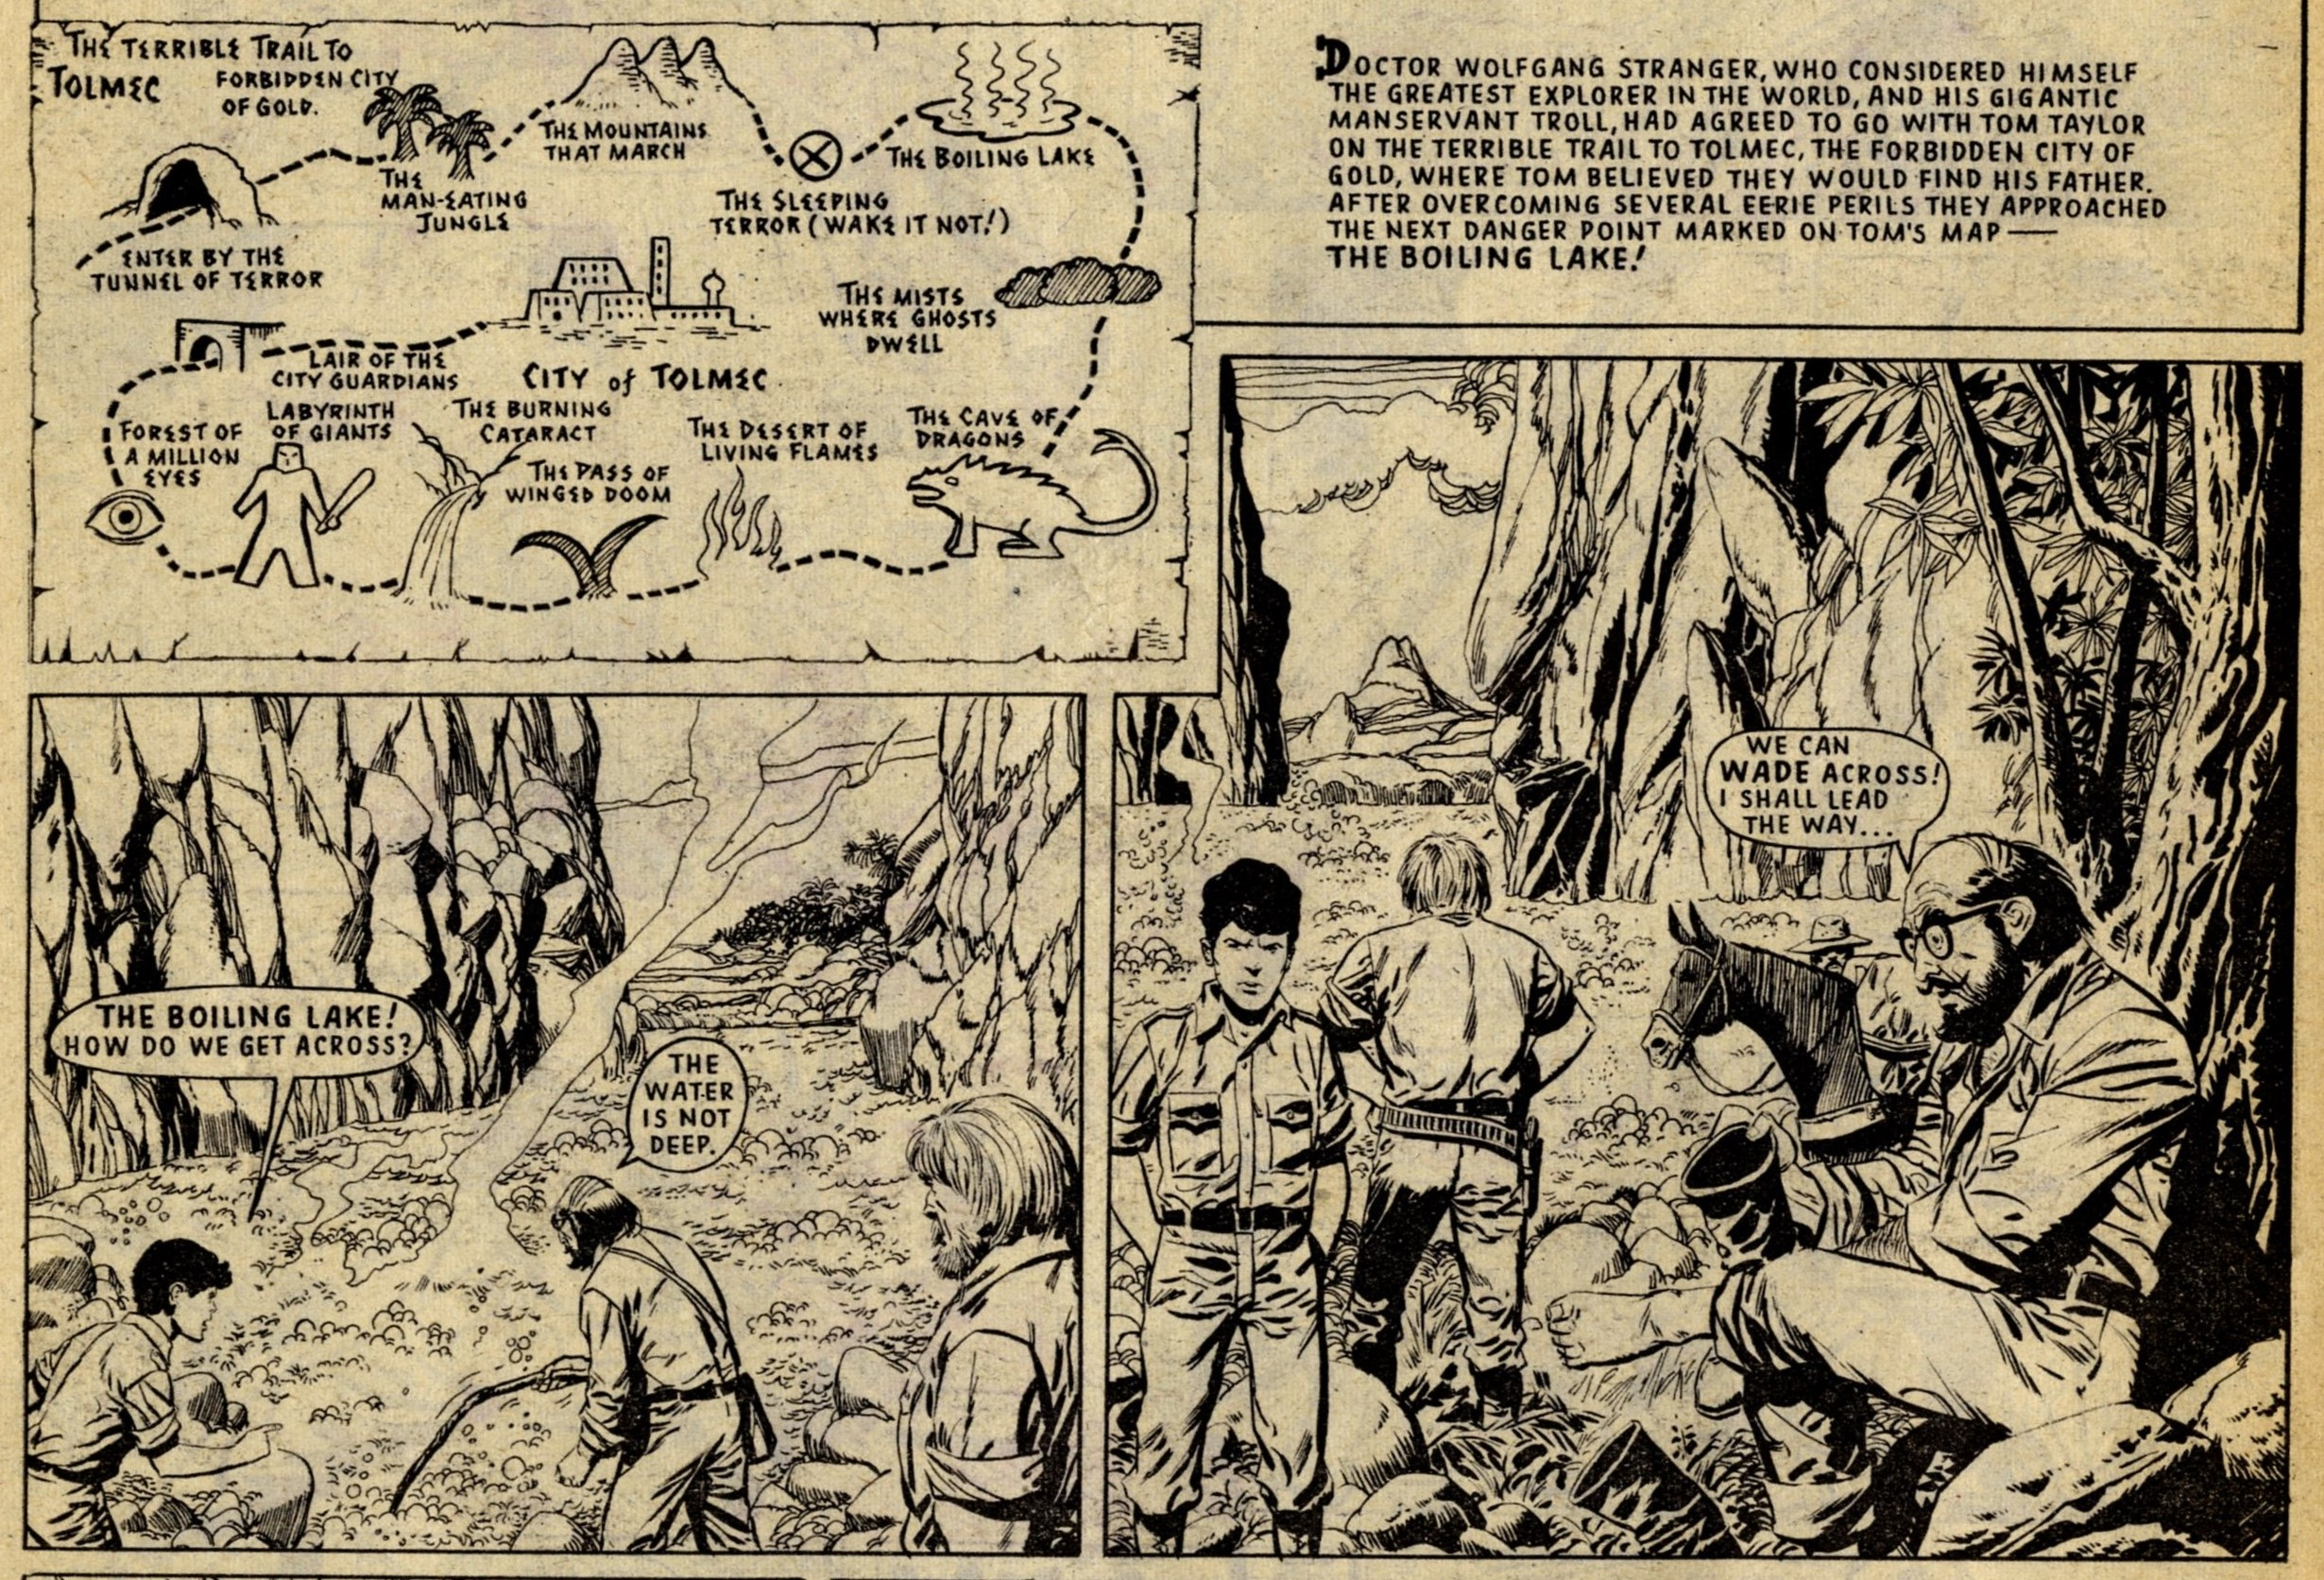 The Terrible Trail to Tolmec: Massimo Belardinelli (artist)